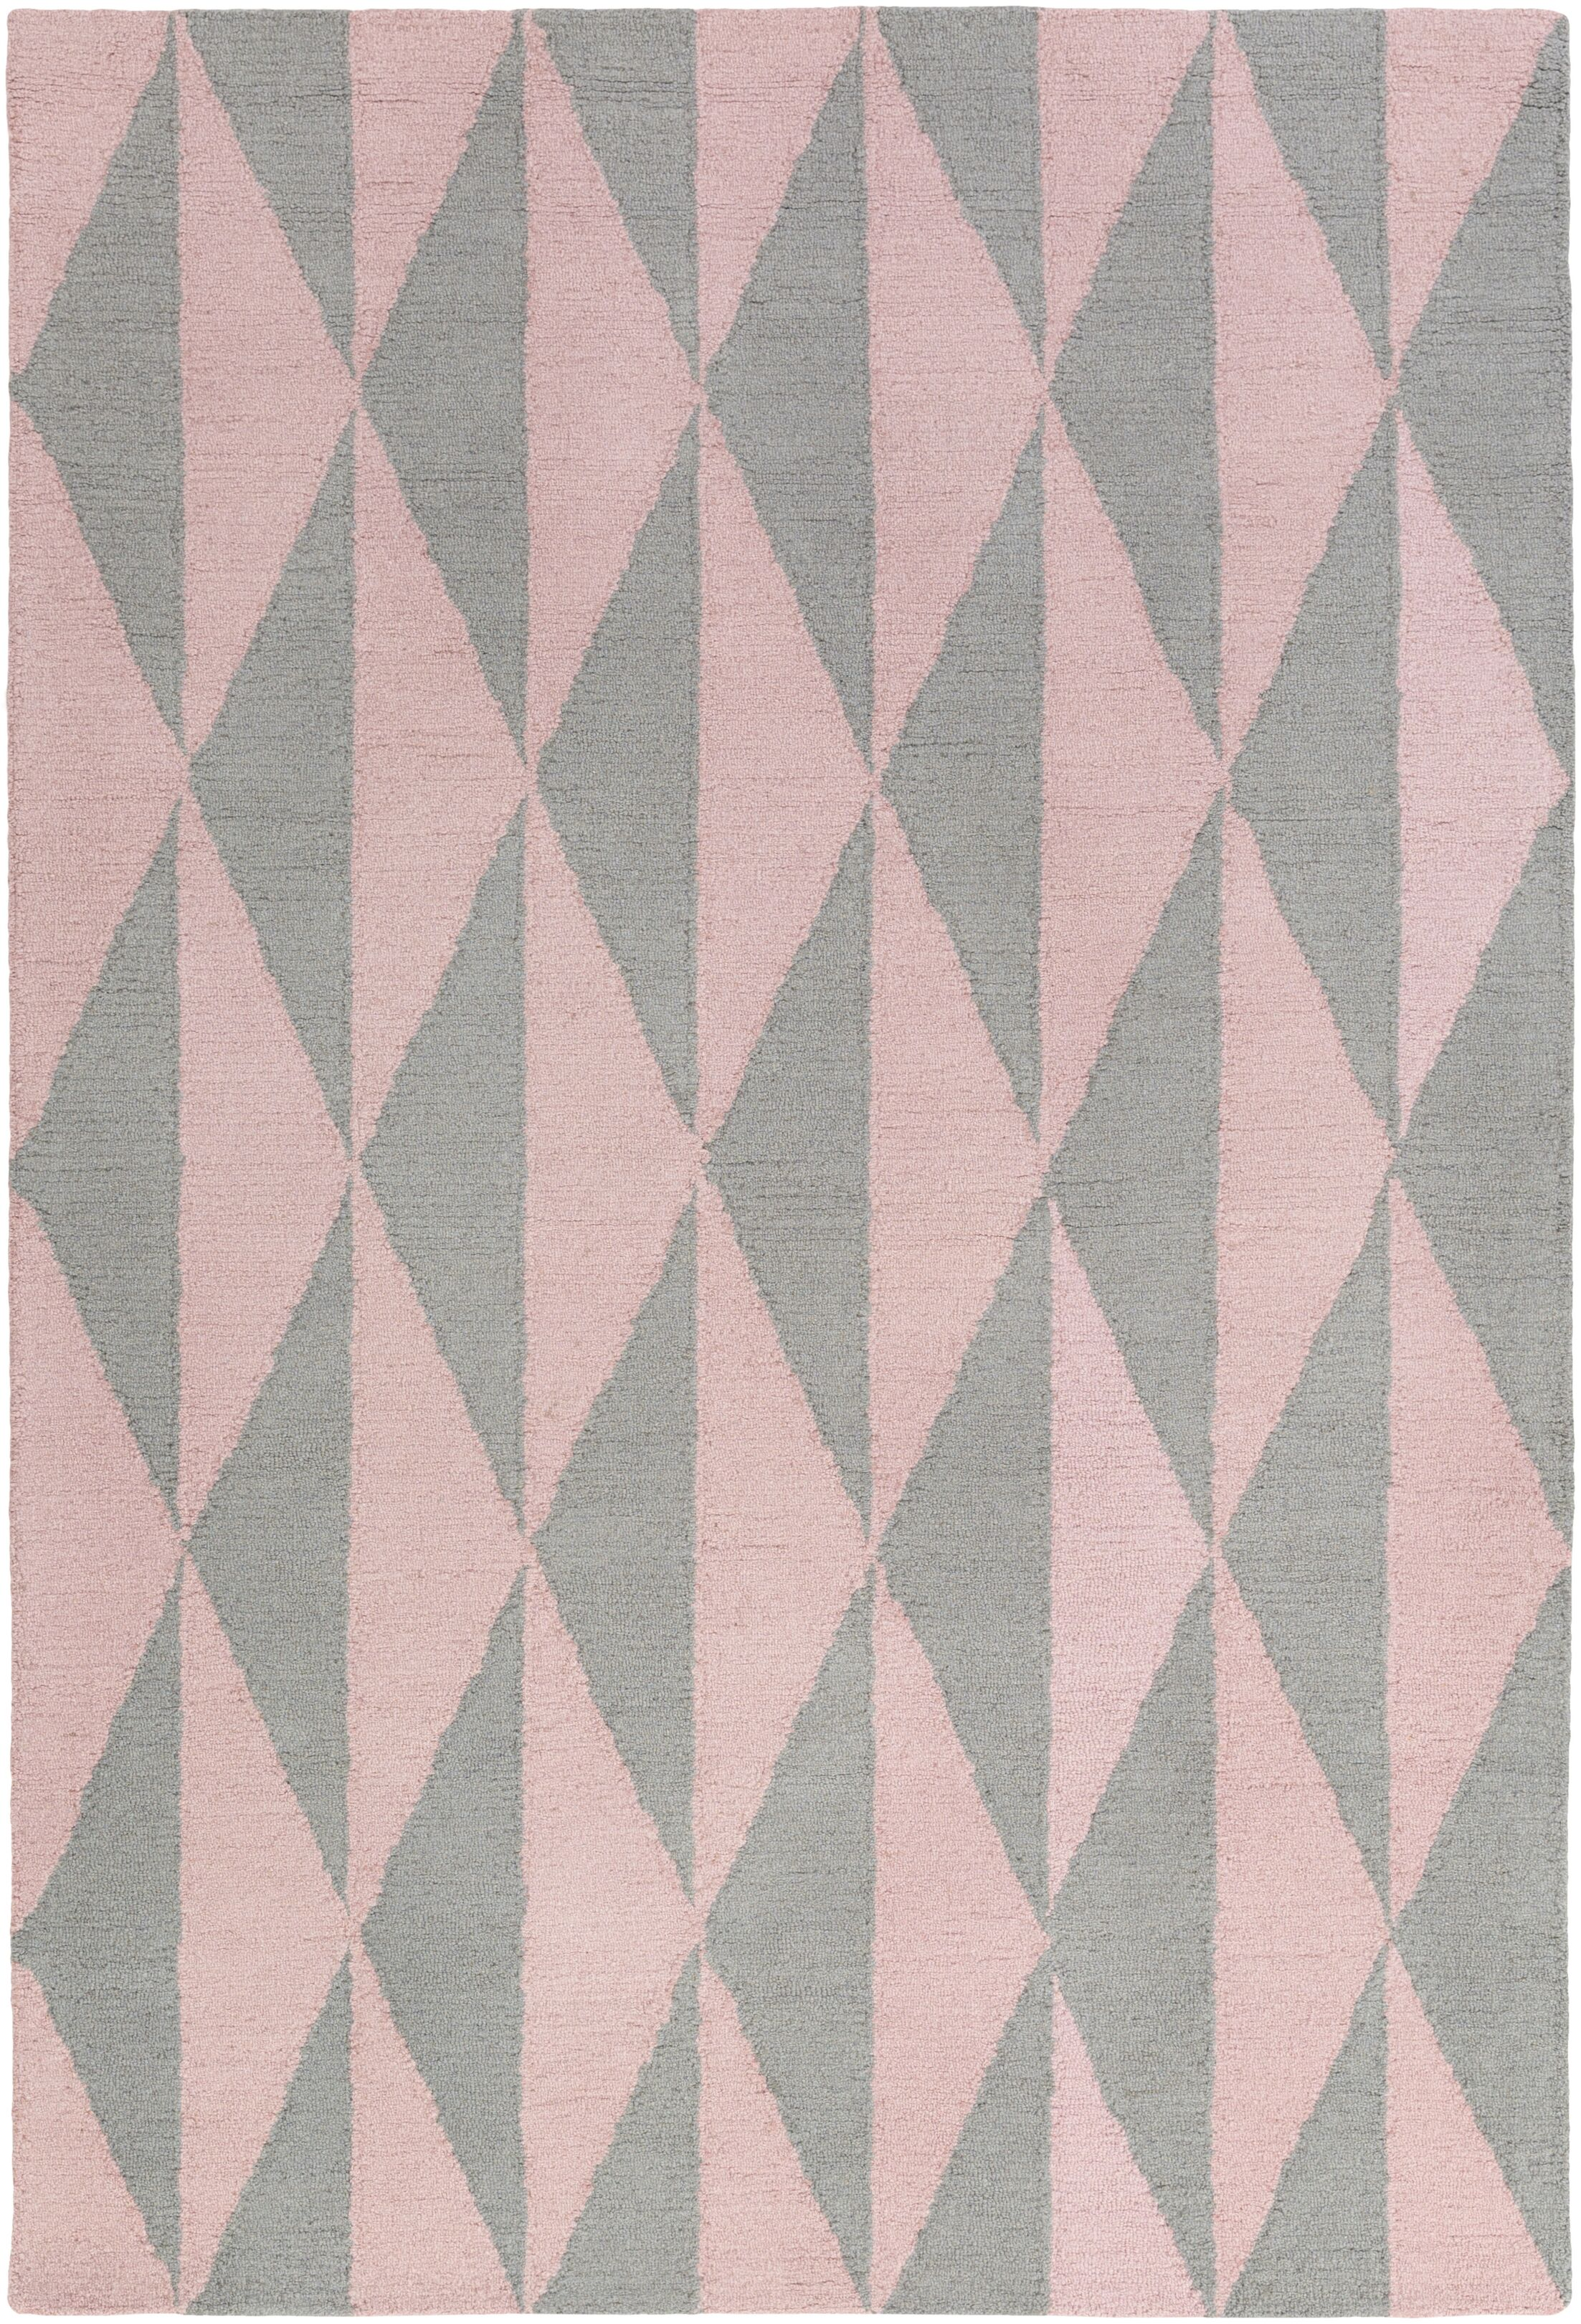 Yowell Hand-Crafted Gray/Light Pink Area Rug Rug Size: Rectangle 8' x 11'